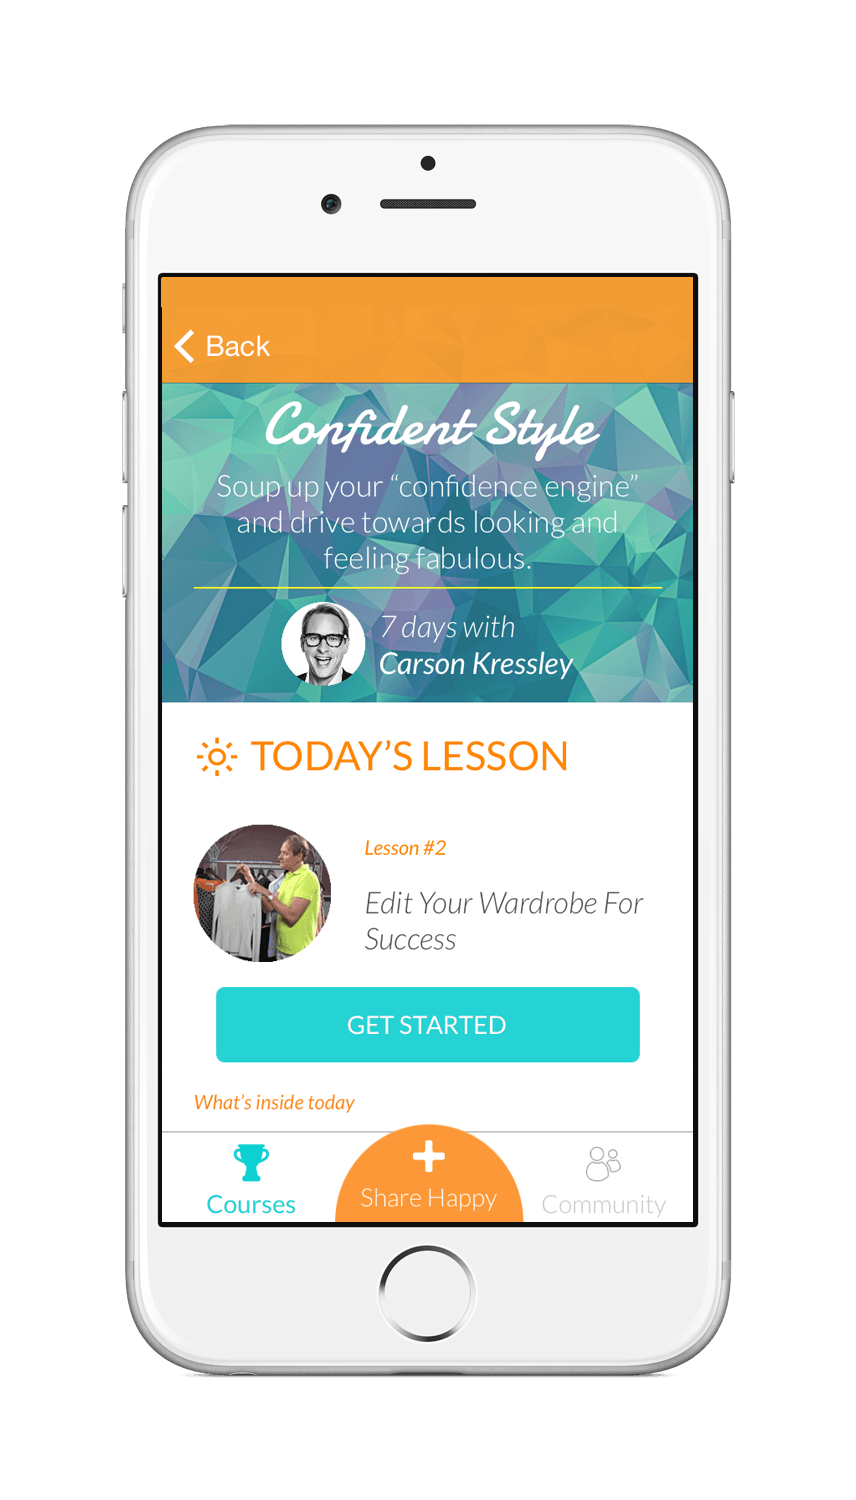 Happier app is a community of people who share and express gratitude